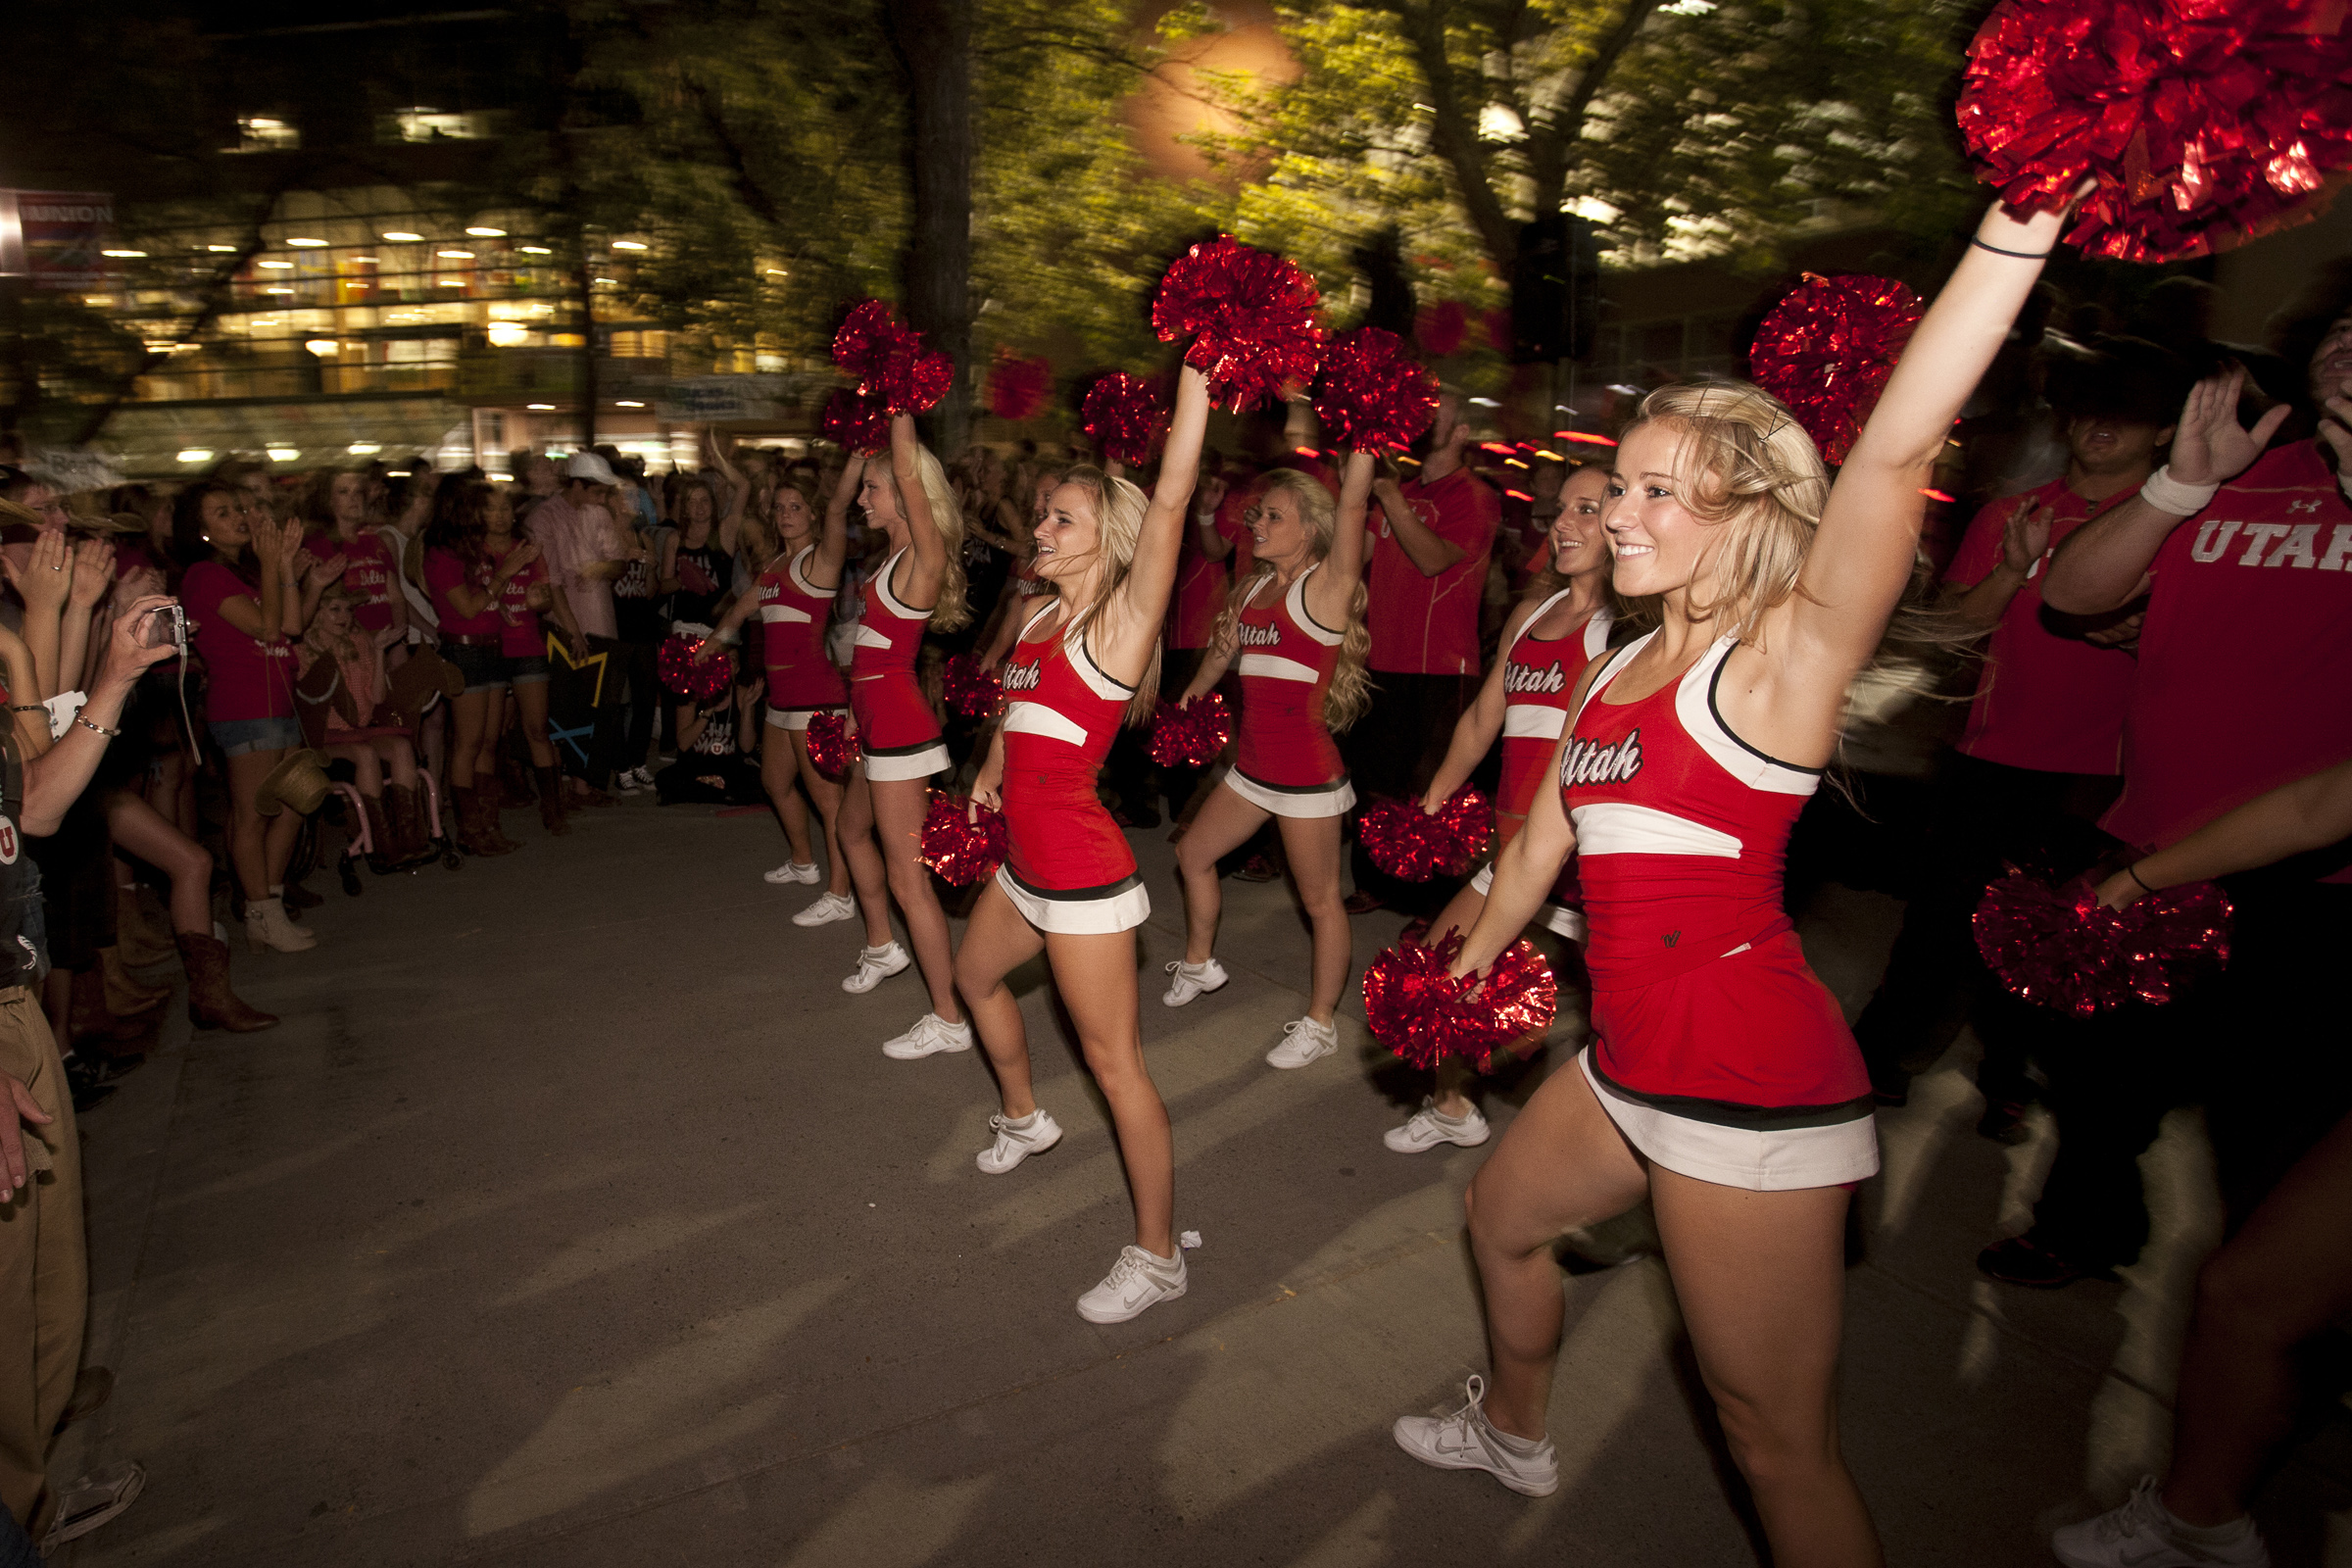 Scenes from Homecoming 2012 - Crimson Rally.